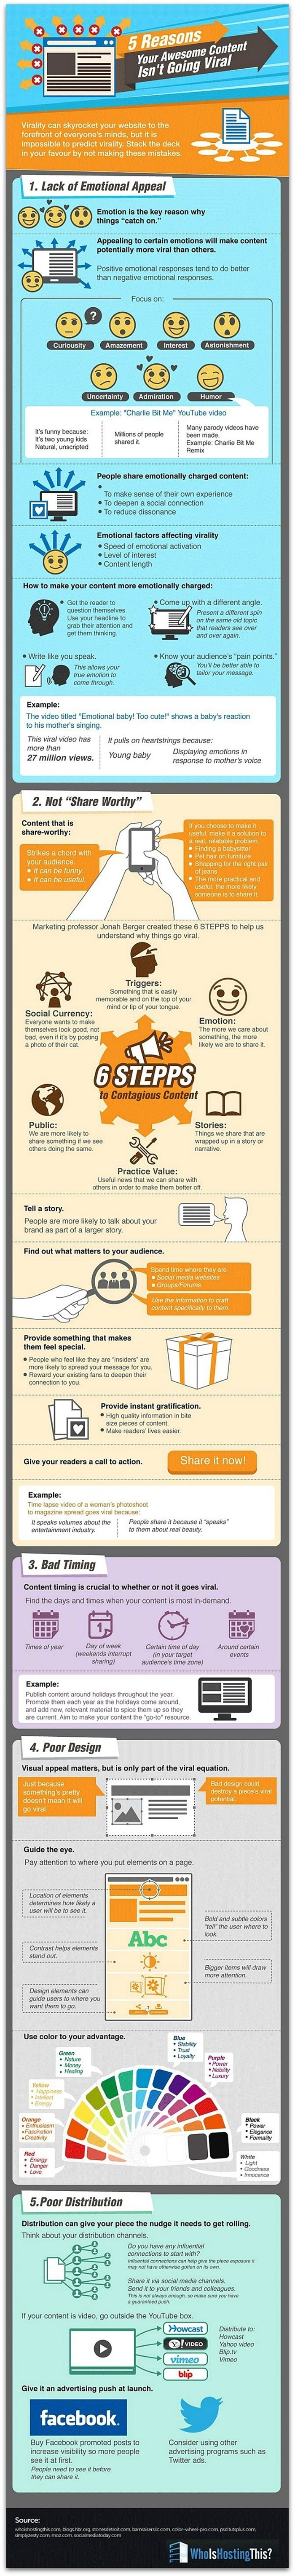 Make_Content_Go_Viral_Infographic